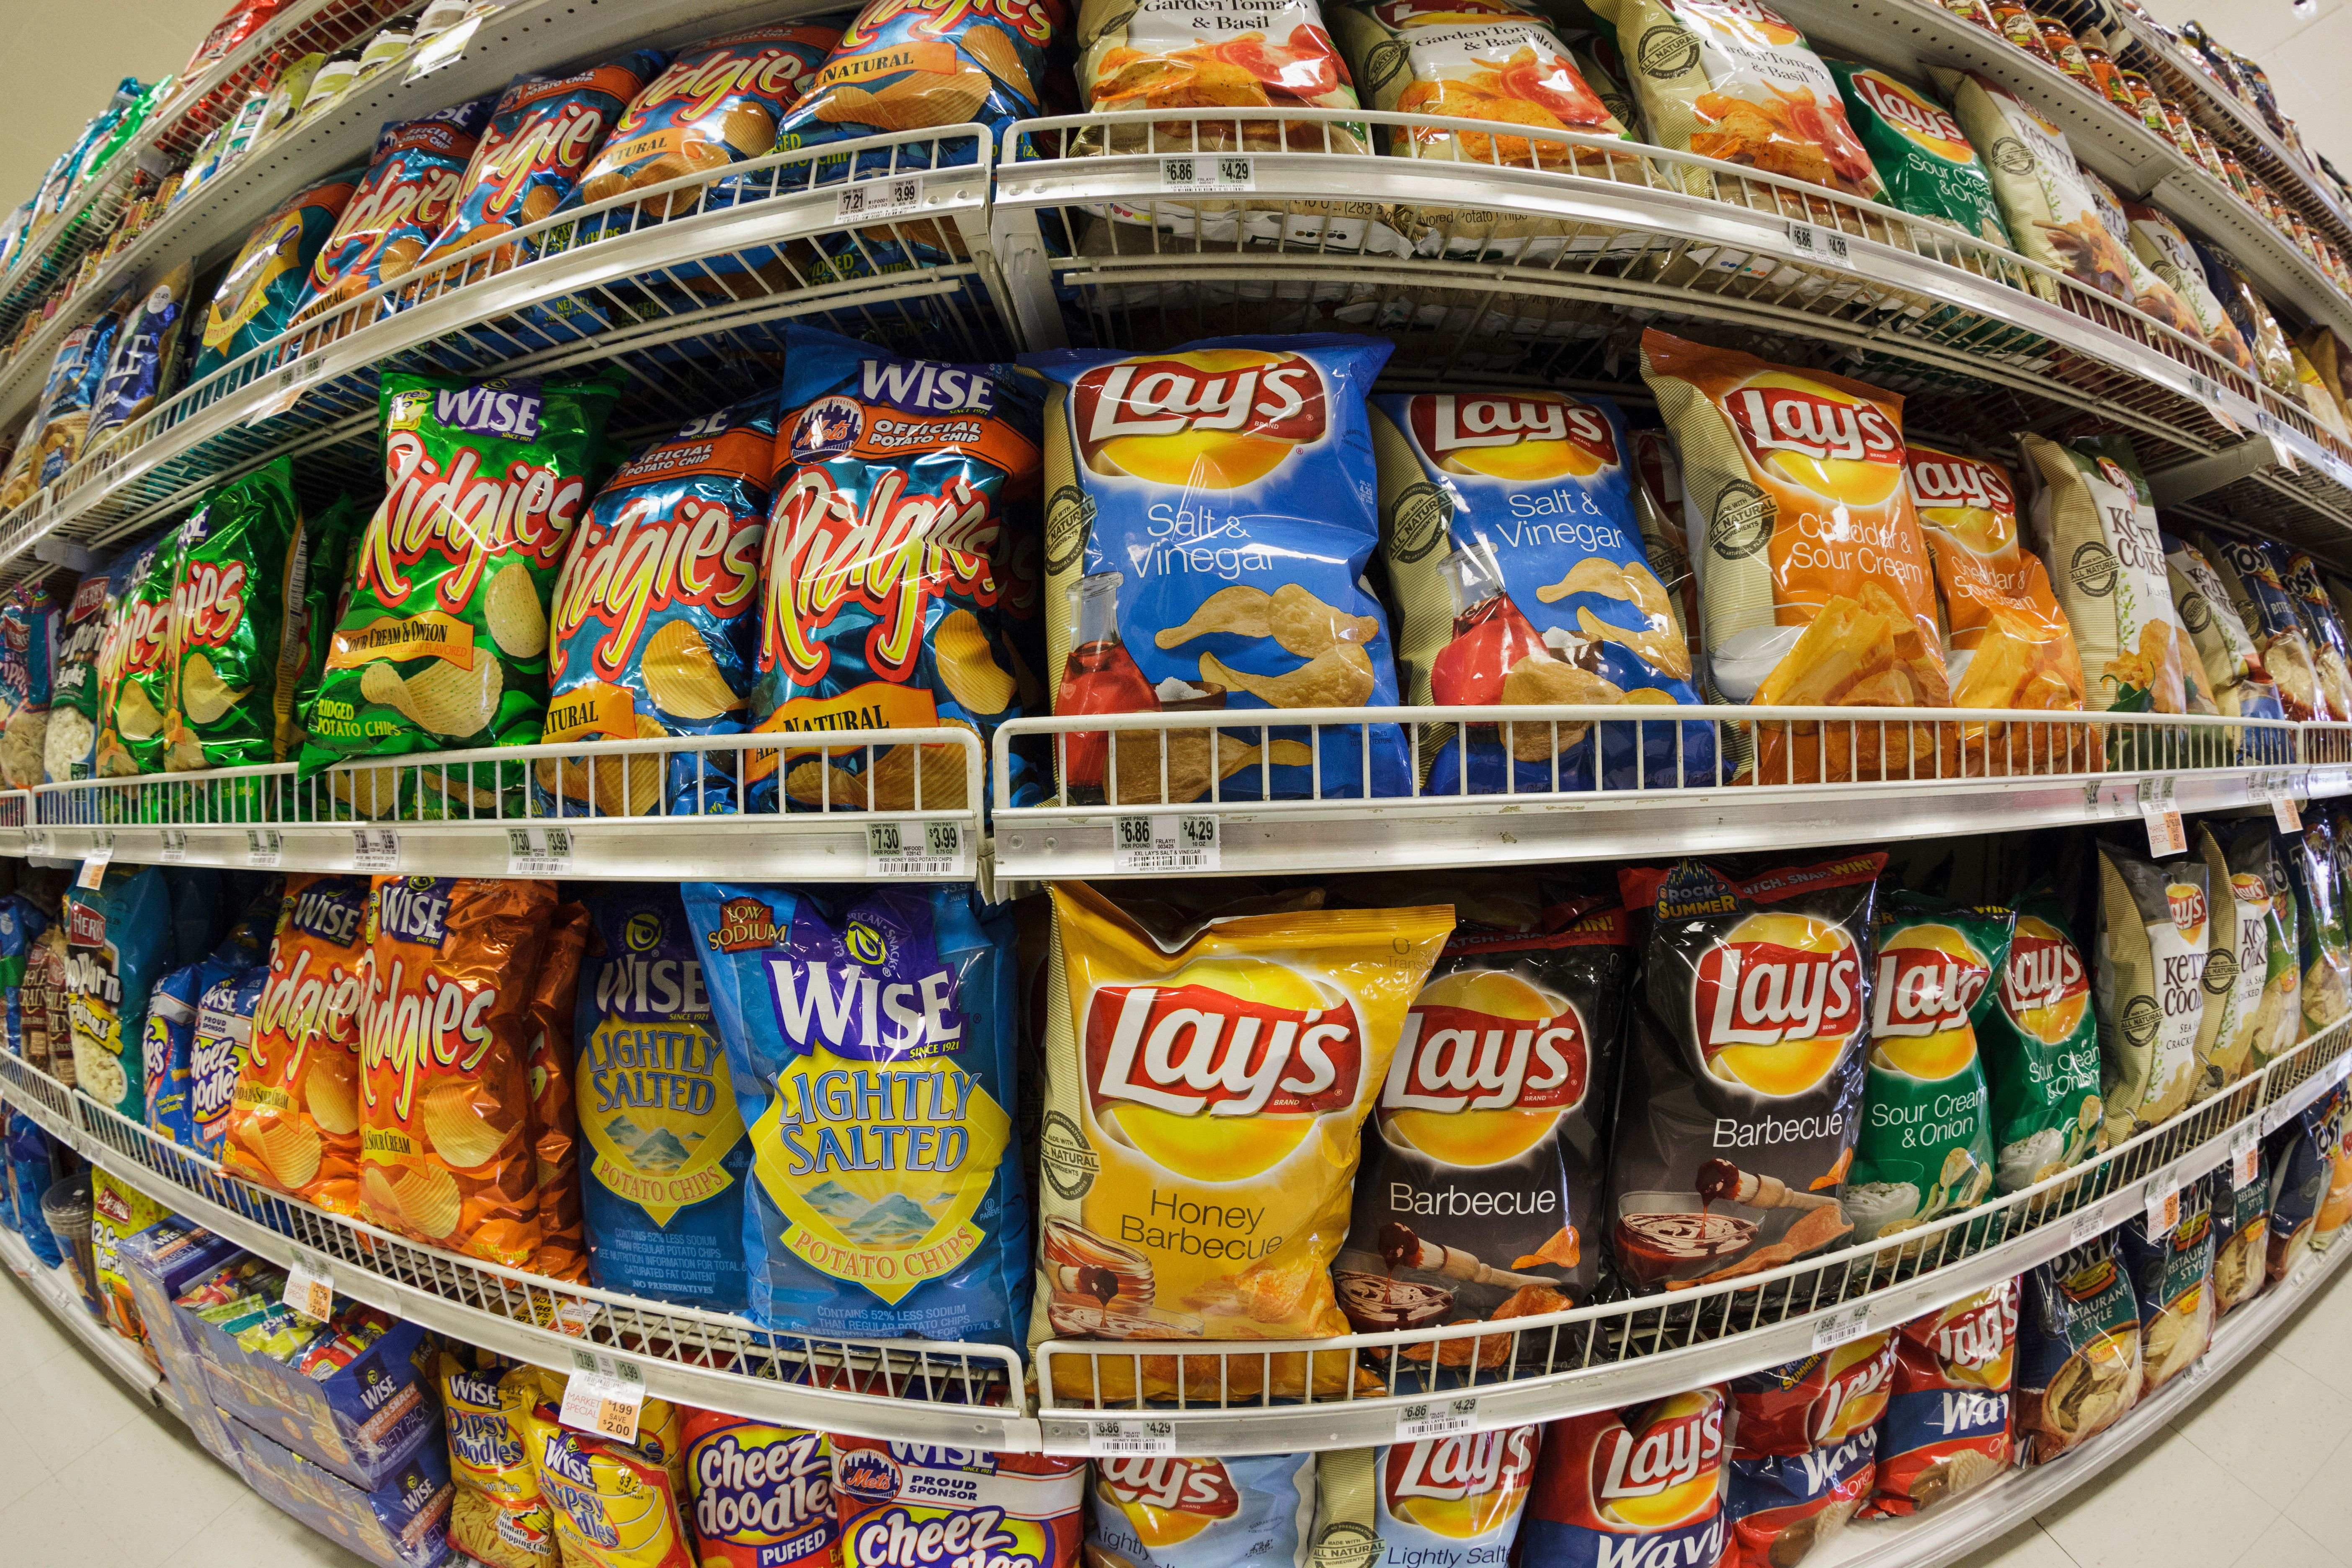 A supermarket shelf at a Kings Food Market in Midland Park, New Jersey filled mostly with Frito-Lay brands of chips. (Photo by James Leynse/Corbis via Getty Images)